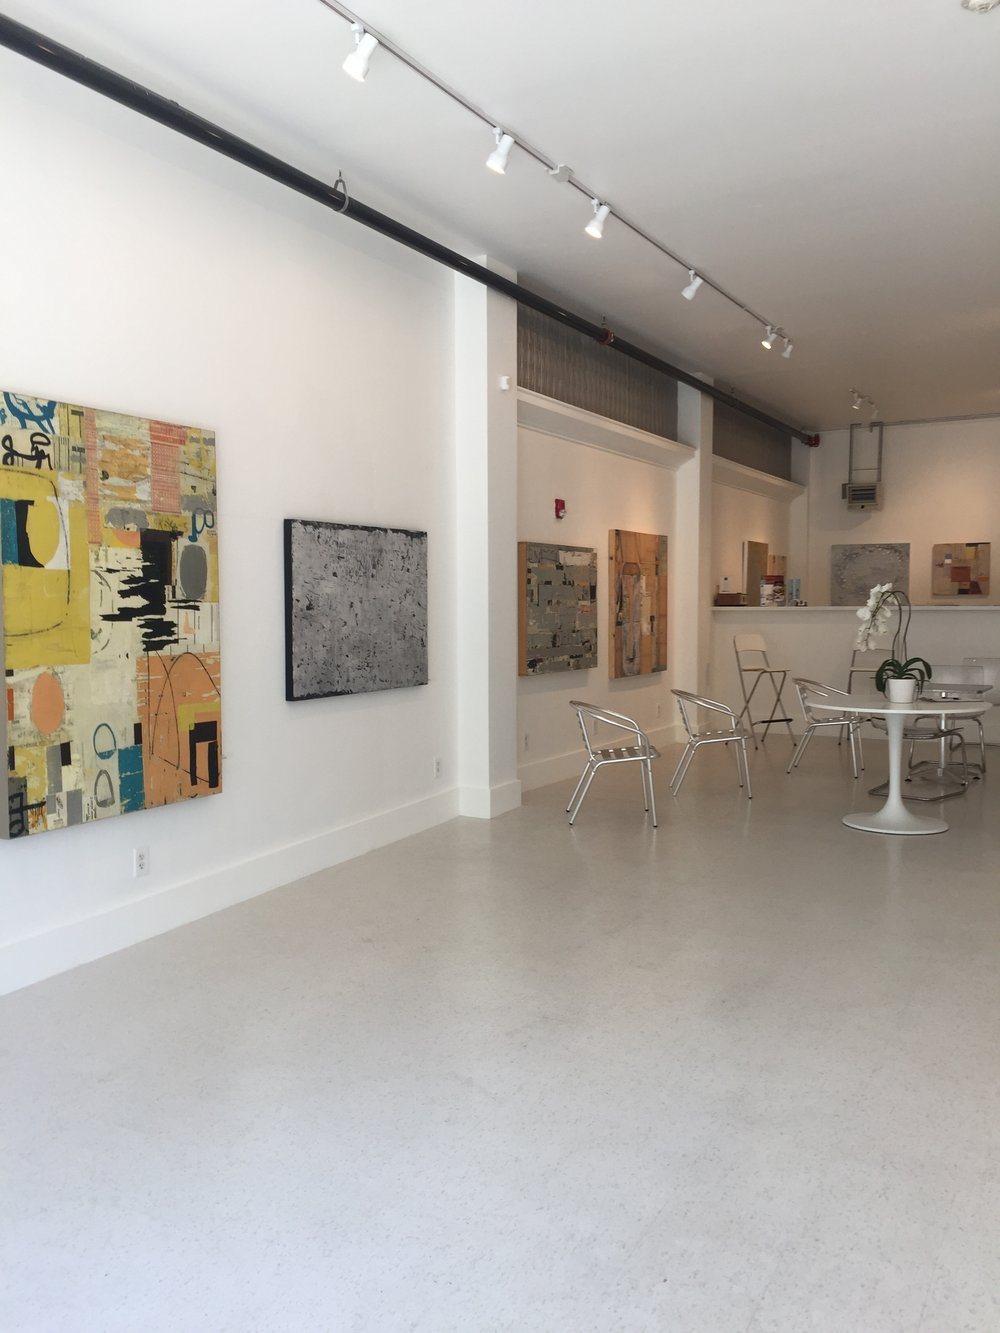 The main gallery space, plenty of room for your tables, chairs and whatever is needed.